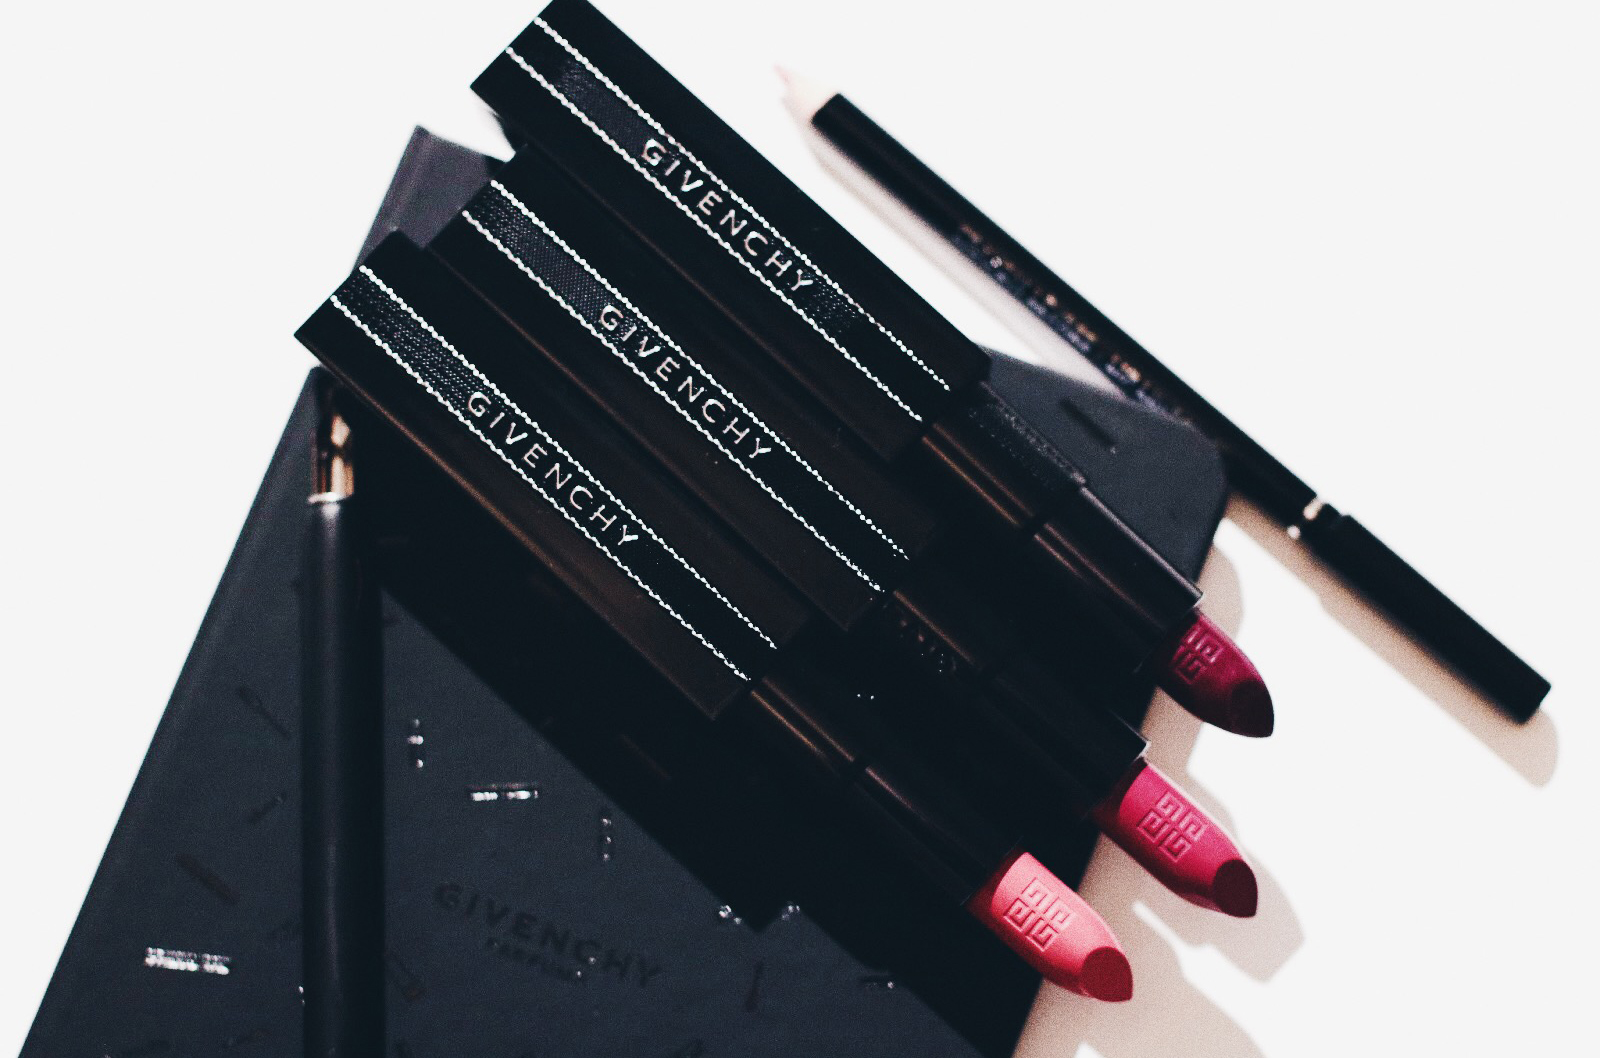 givenchy rouge interdit nouvelle formule test avis swatches